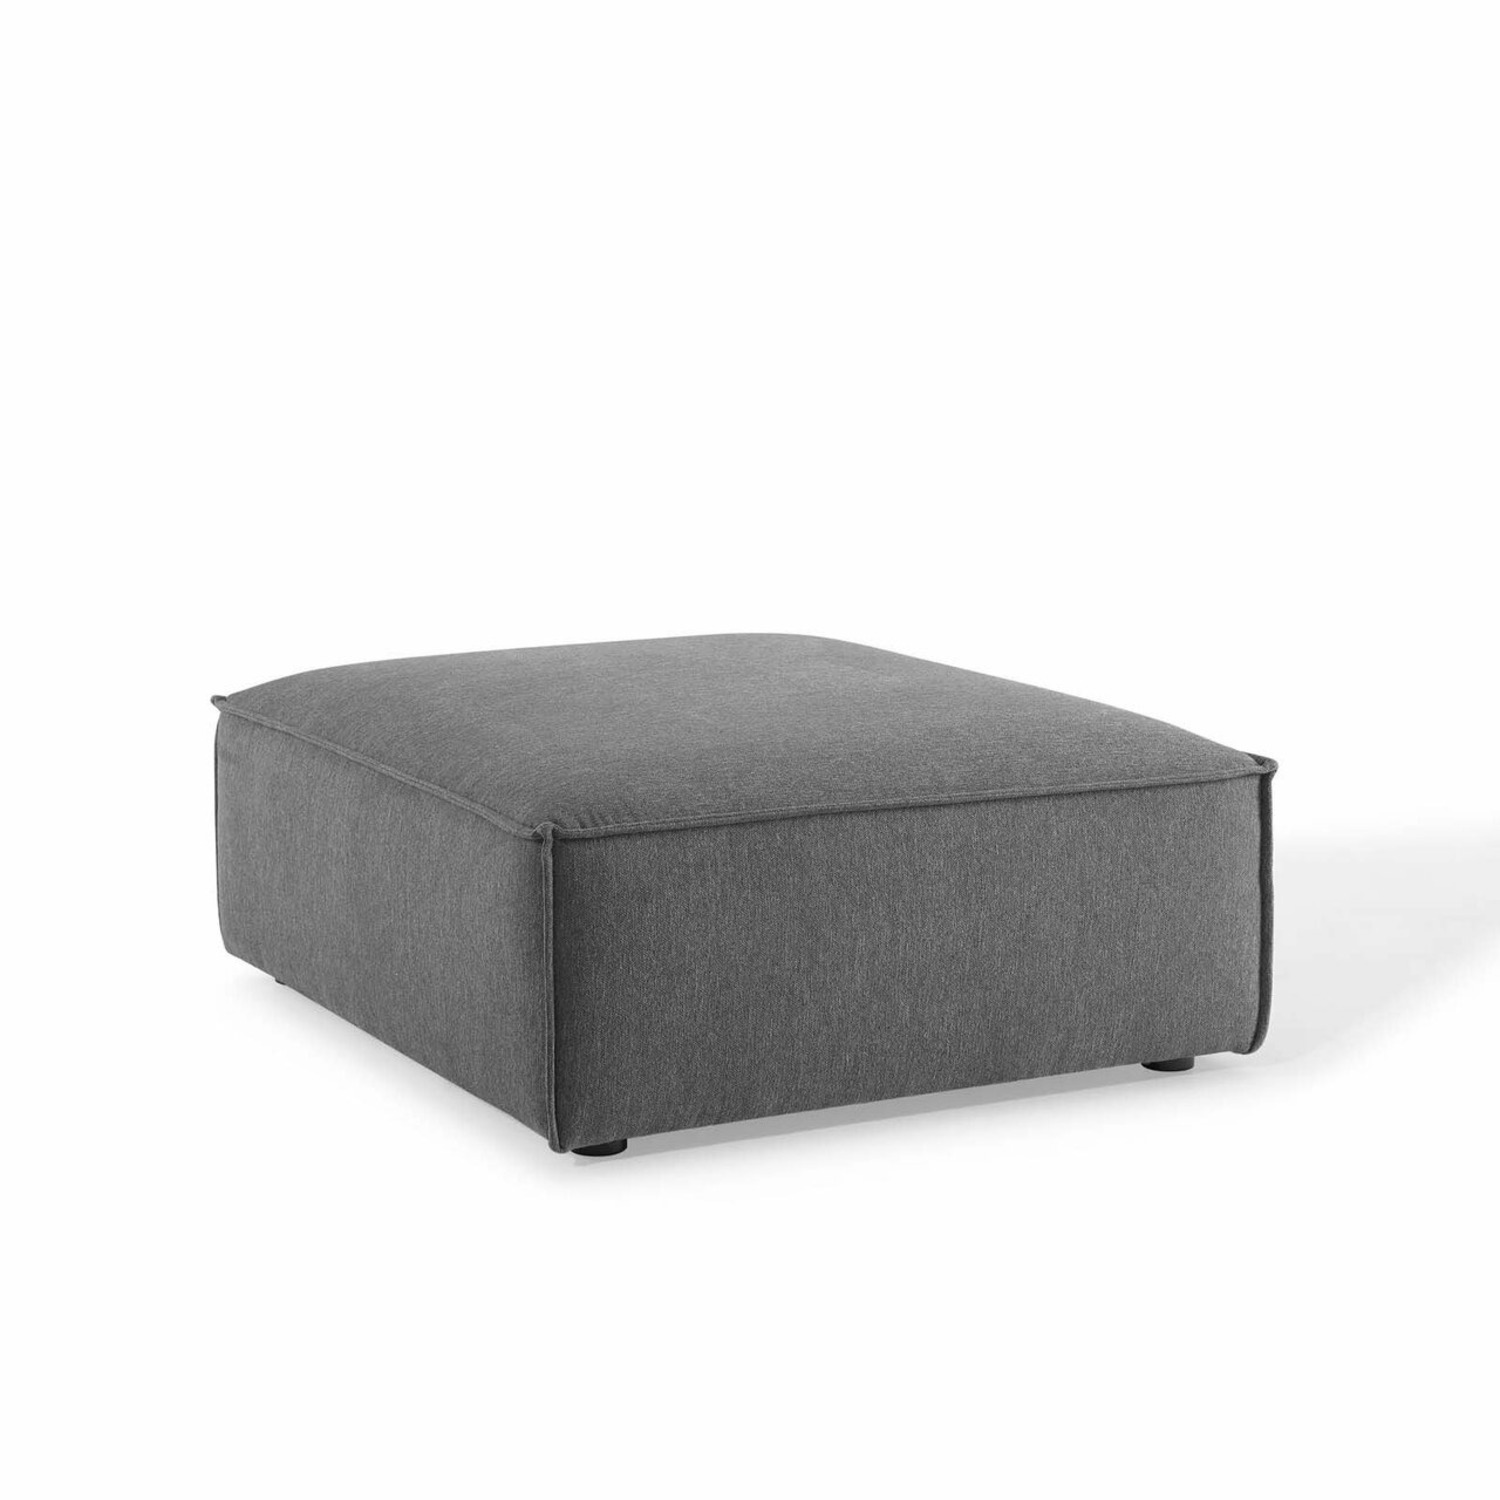 6-Piece Sectional Sofa In Charcoal Fabric - image-9